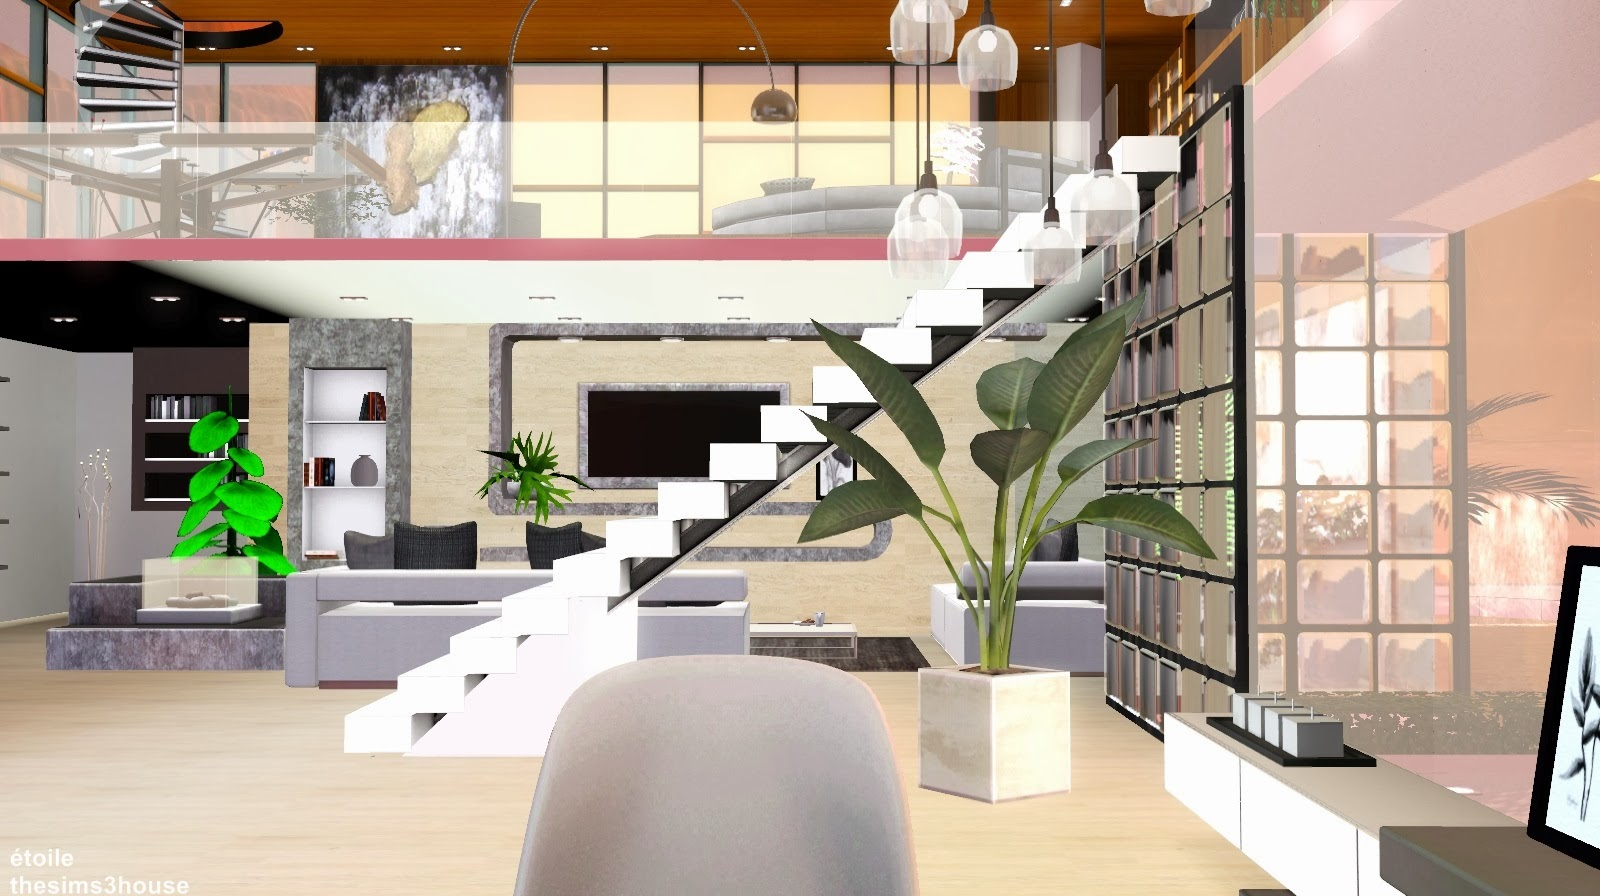 House 20 by etoile